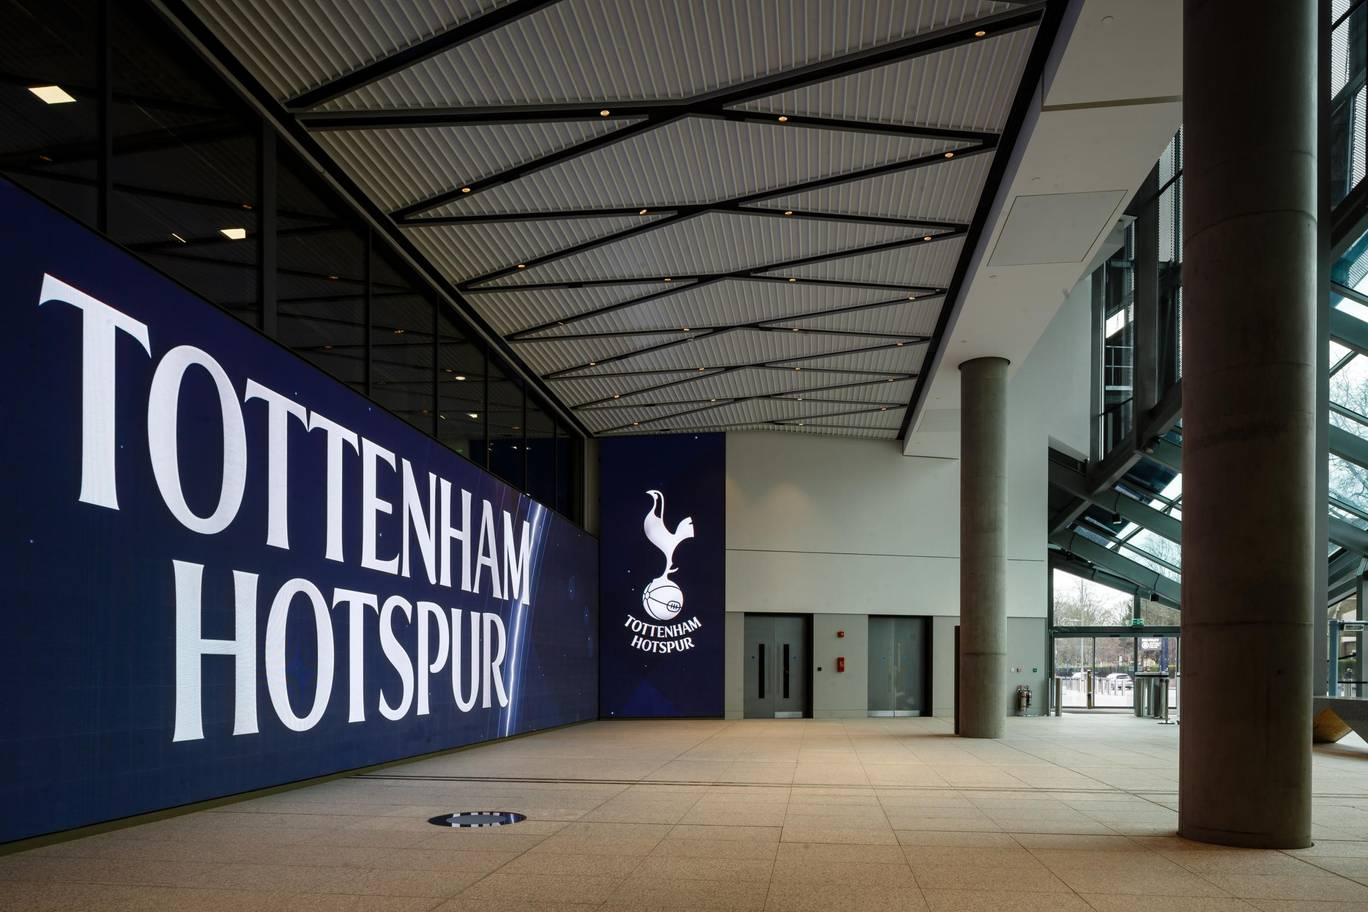 Check out these awesome photos from inside Tottenham's new stadium